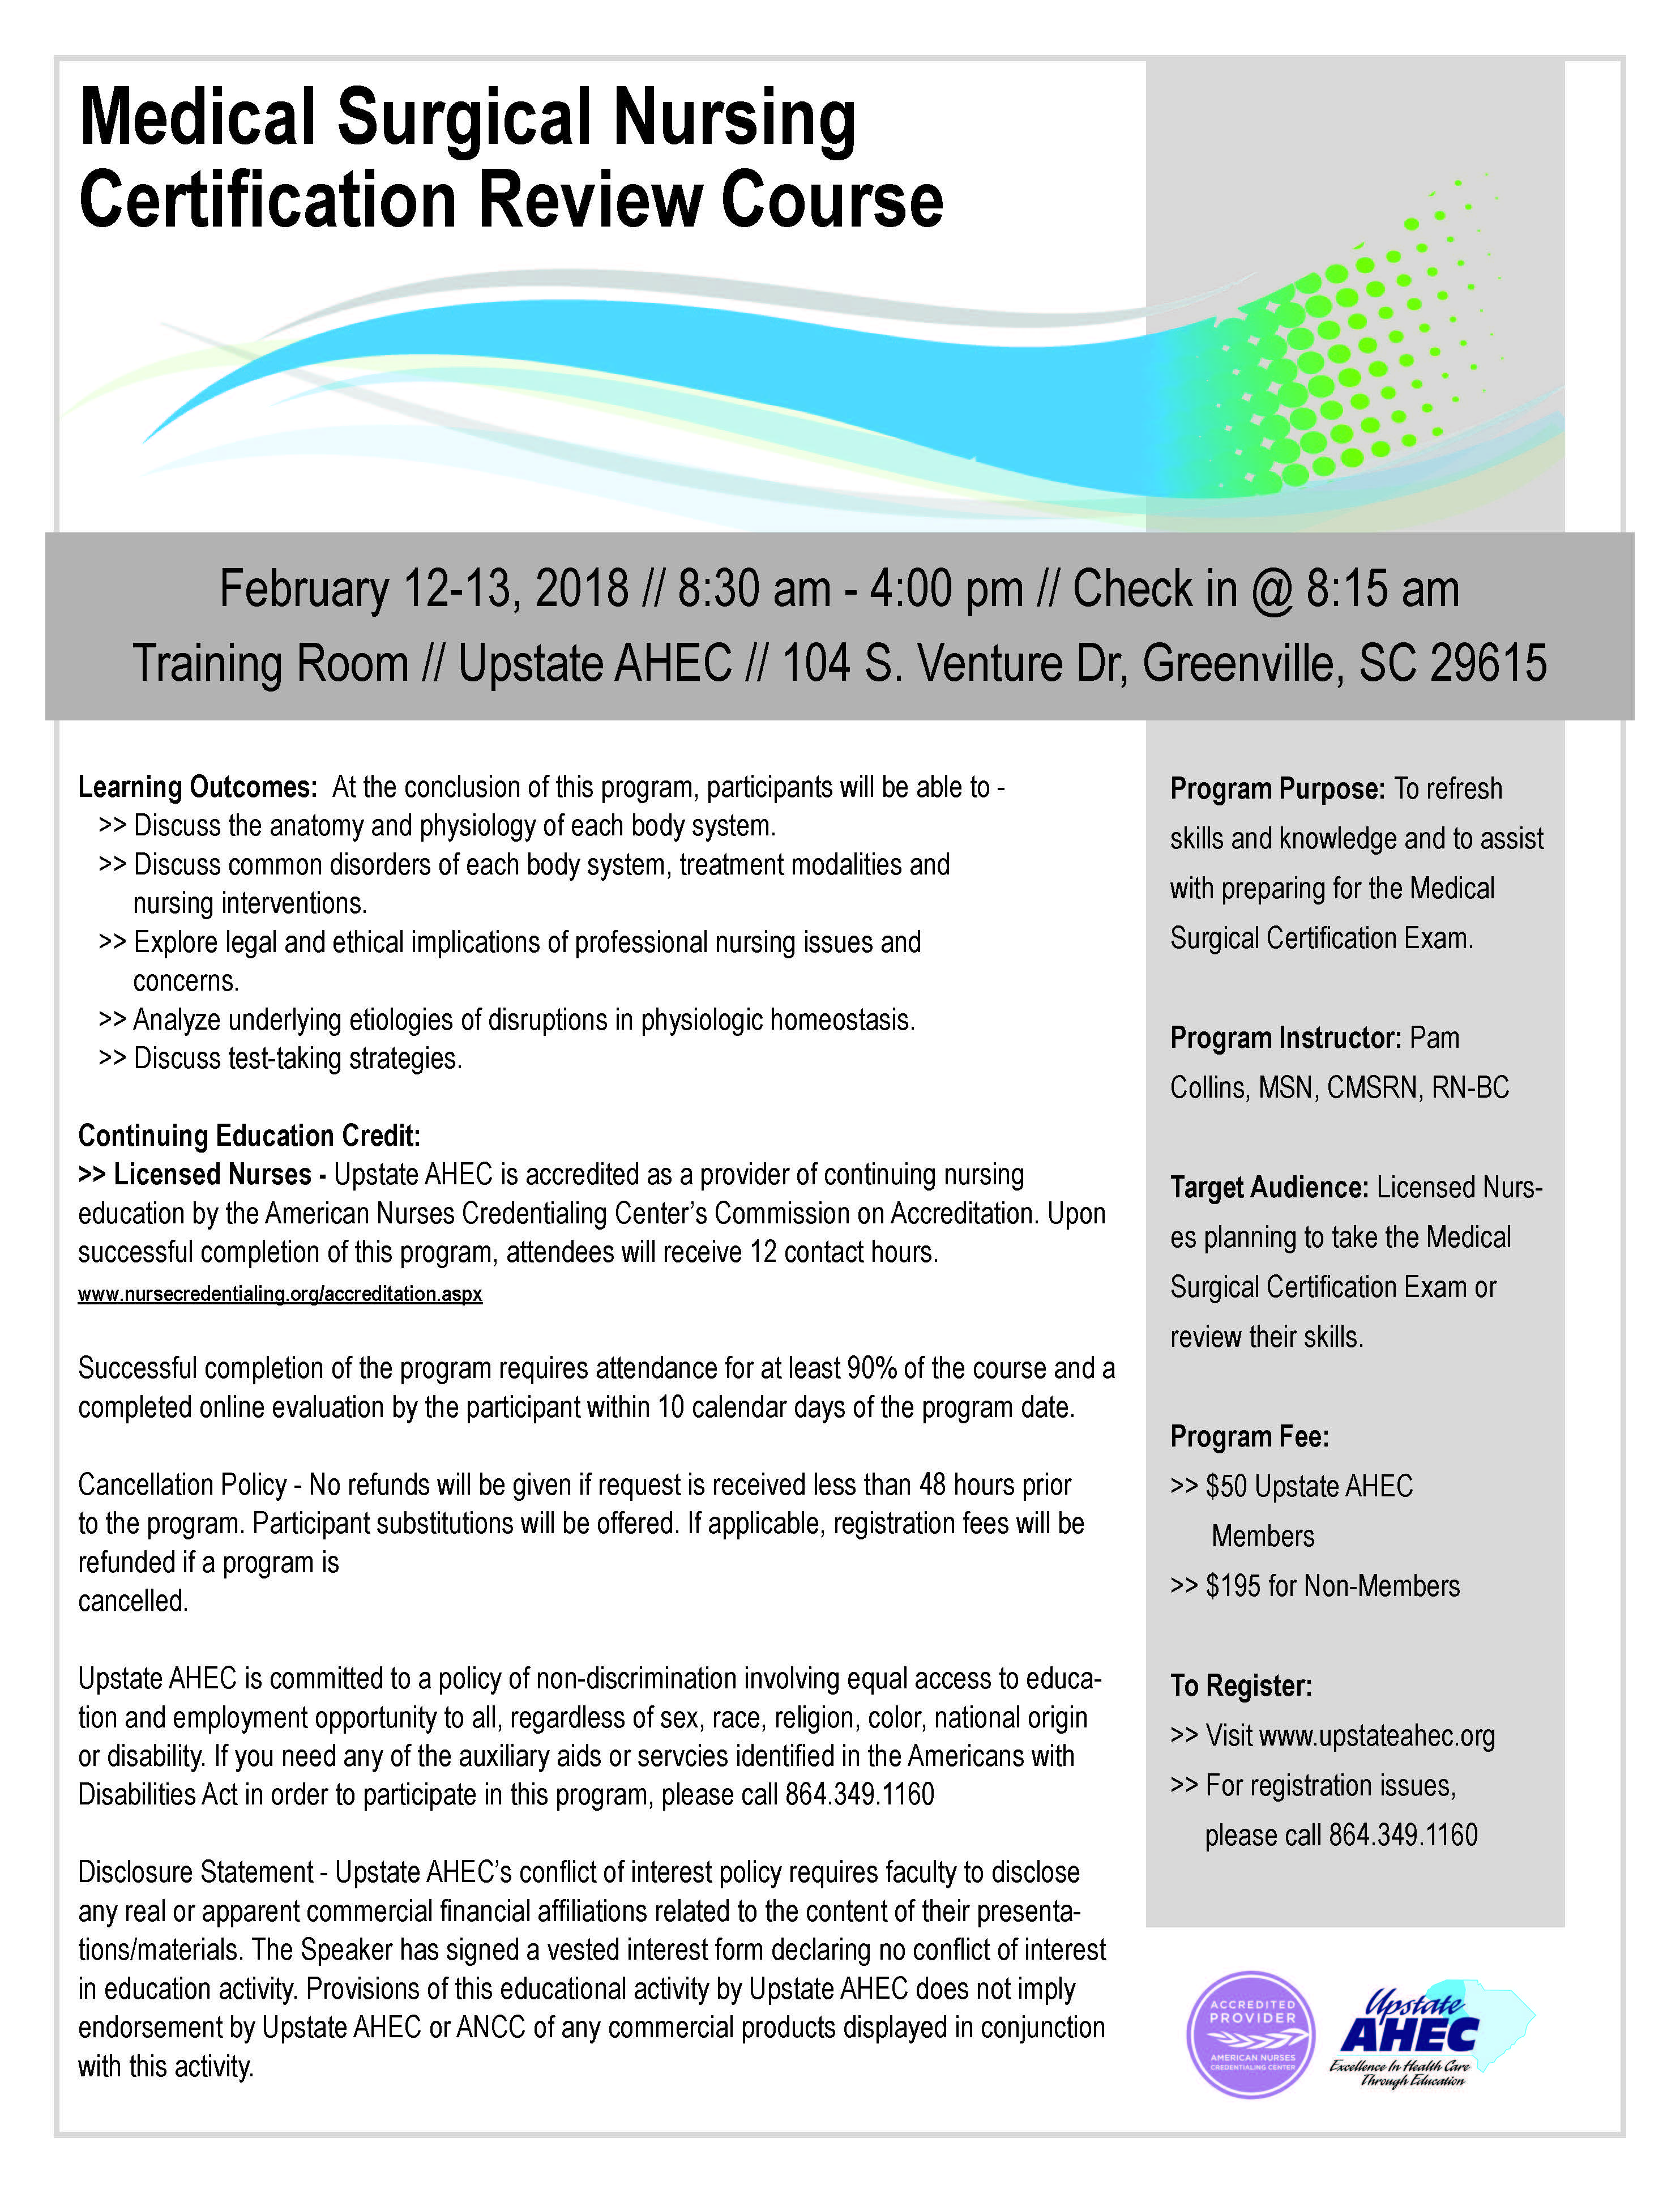 Medical Surgical Nursing Certification Review Course Feb 12 13